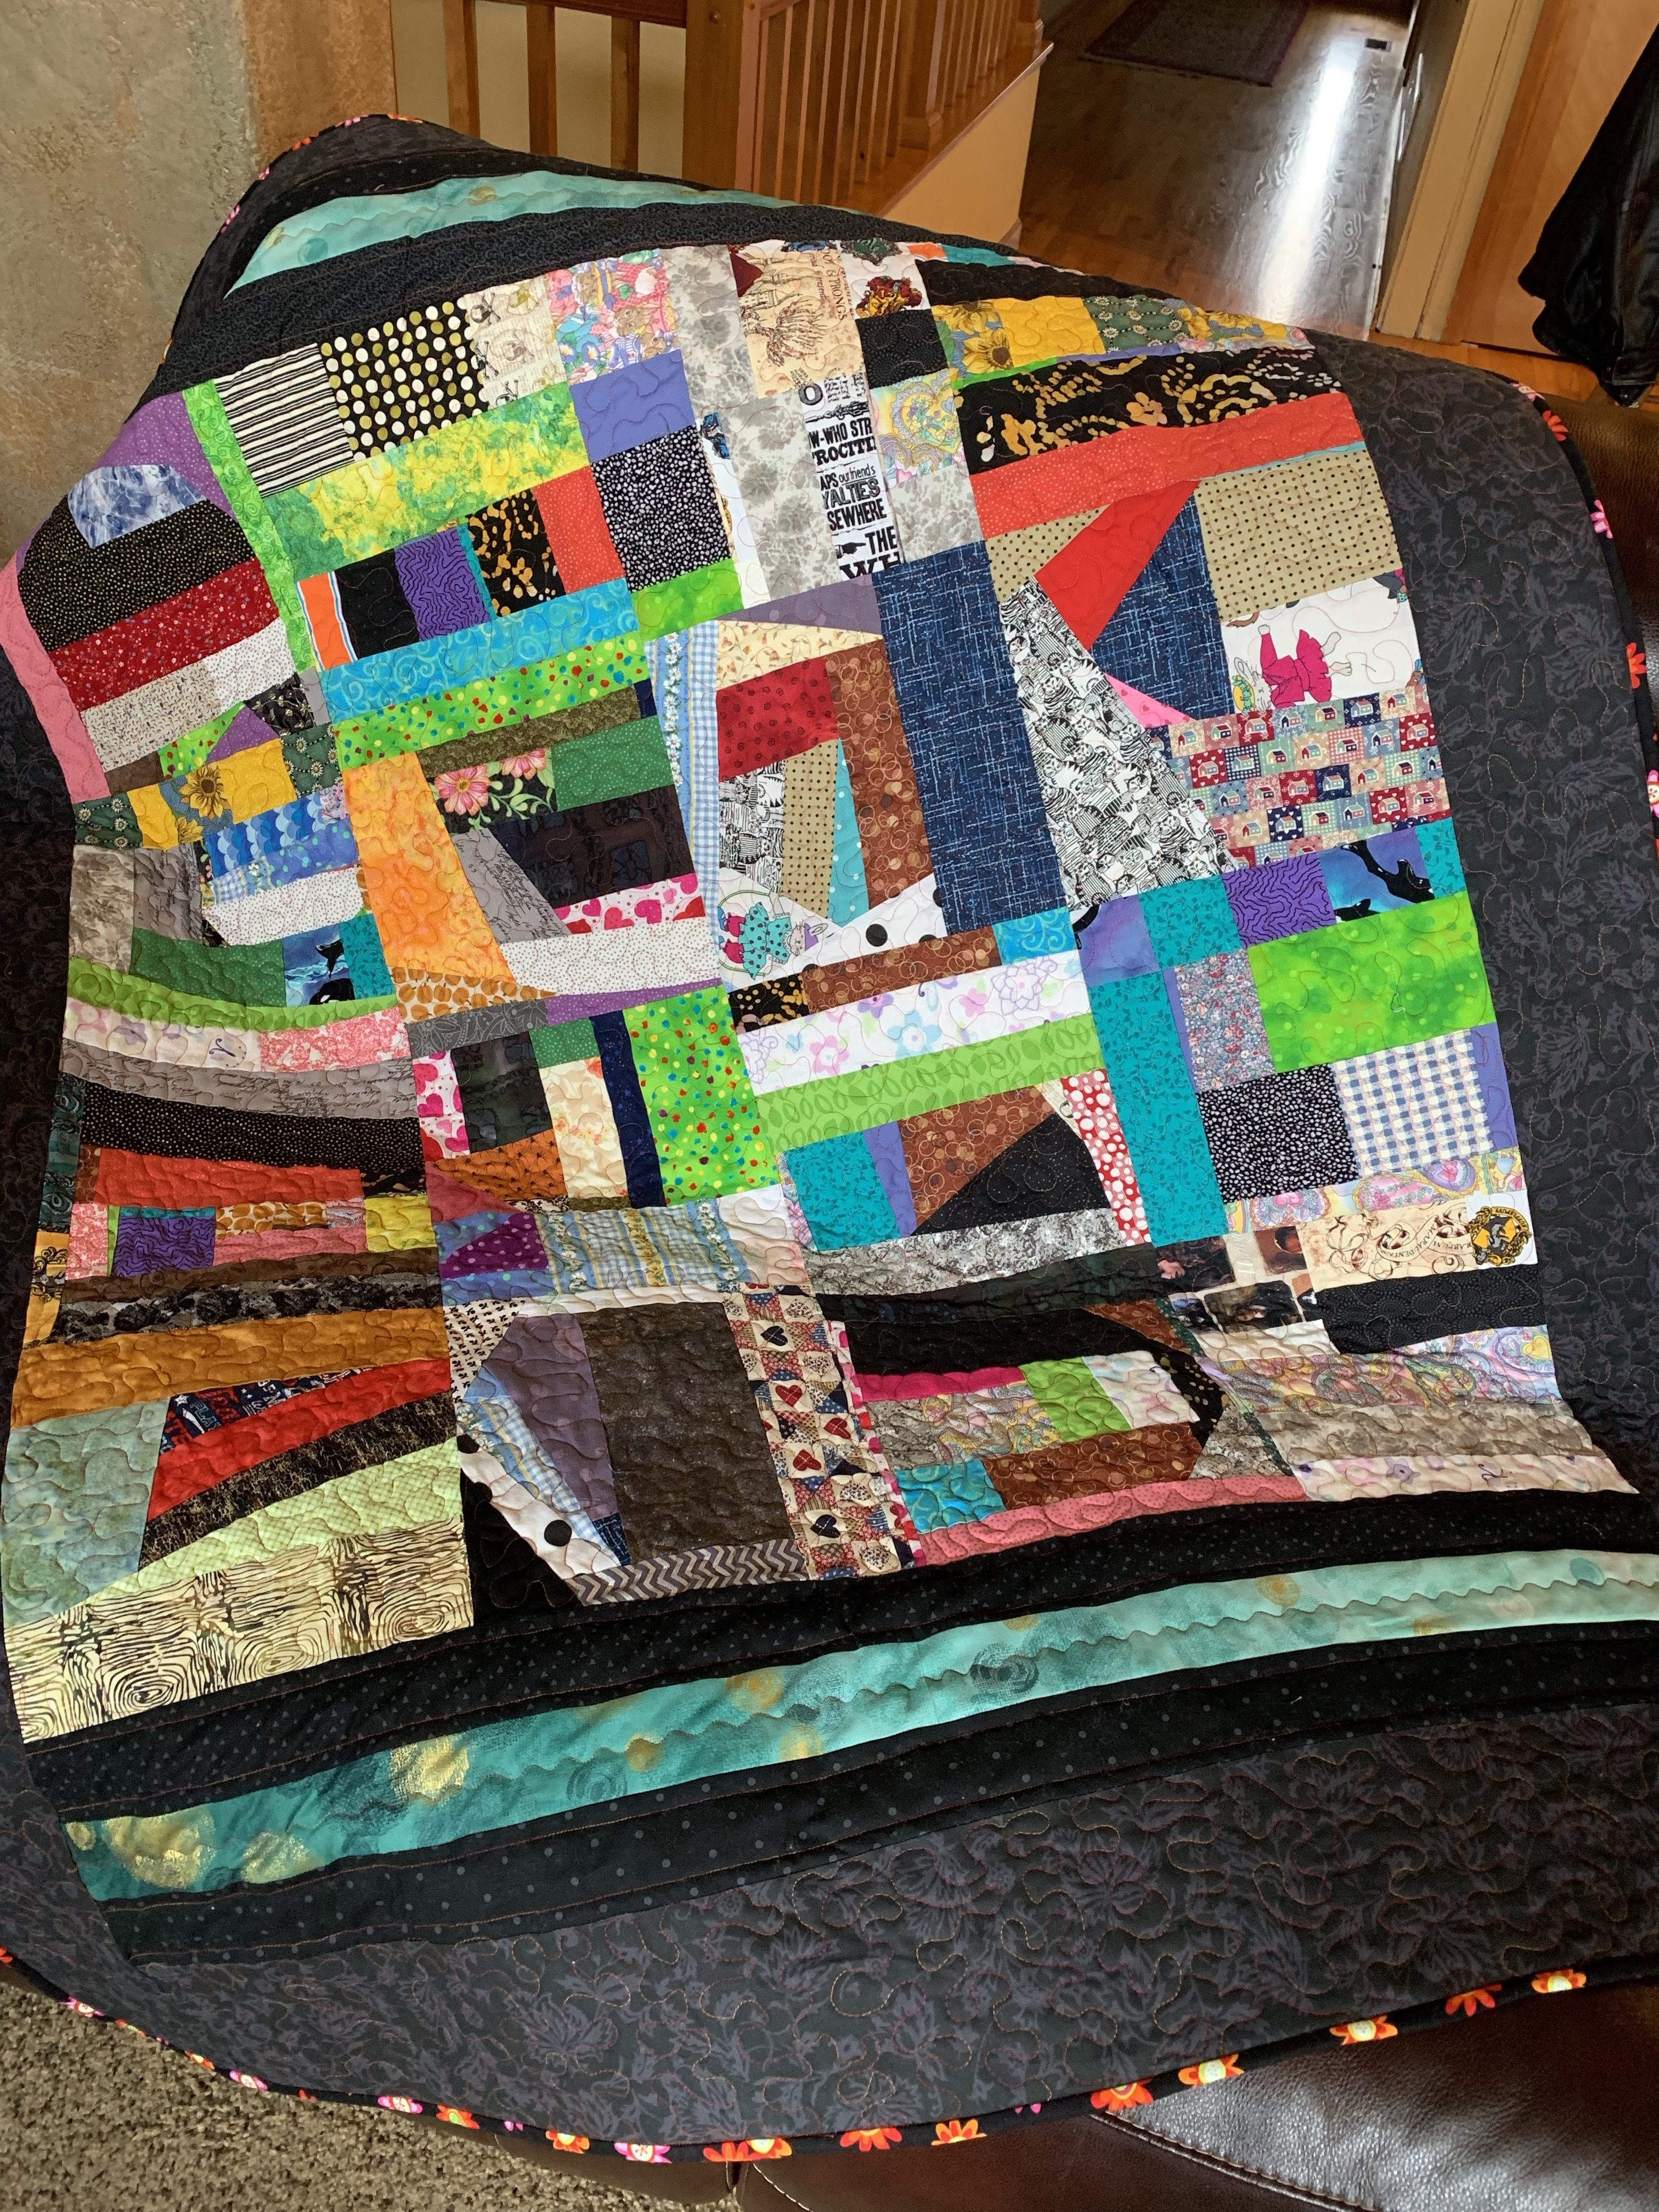 SCRAP QUILT SERIES | THE CRAFTY AUTHOR